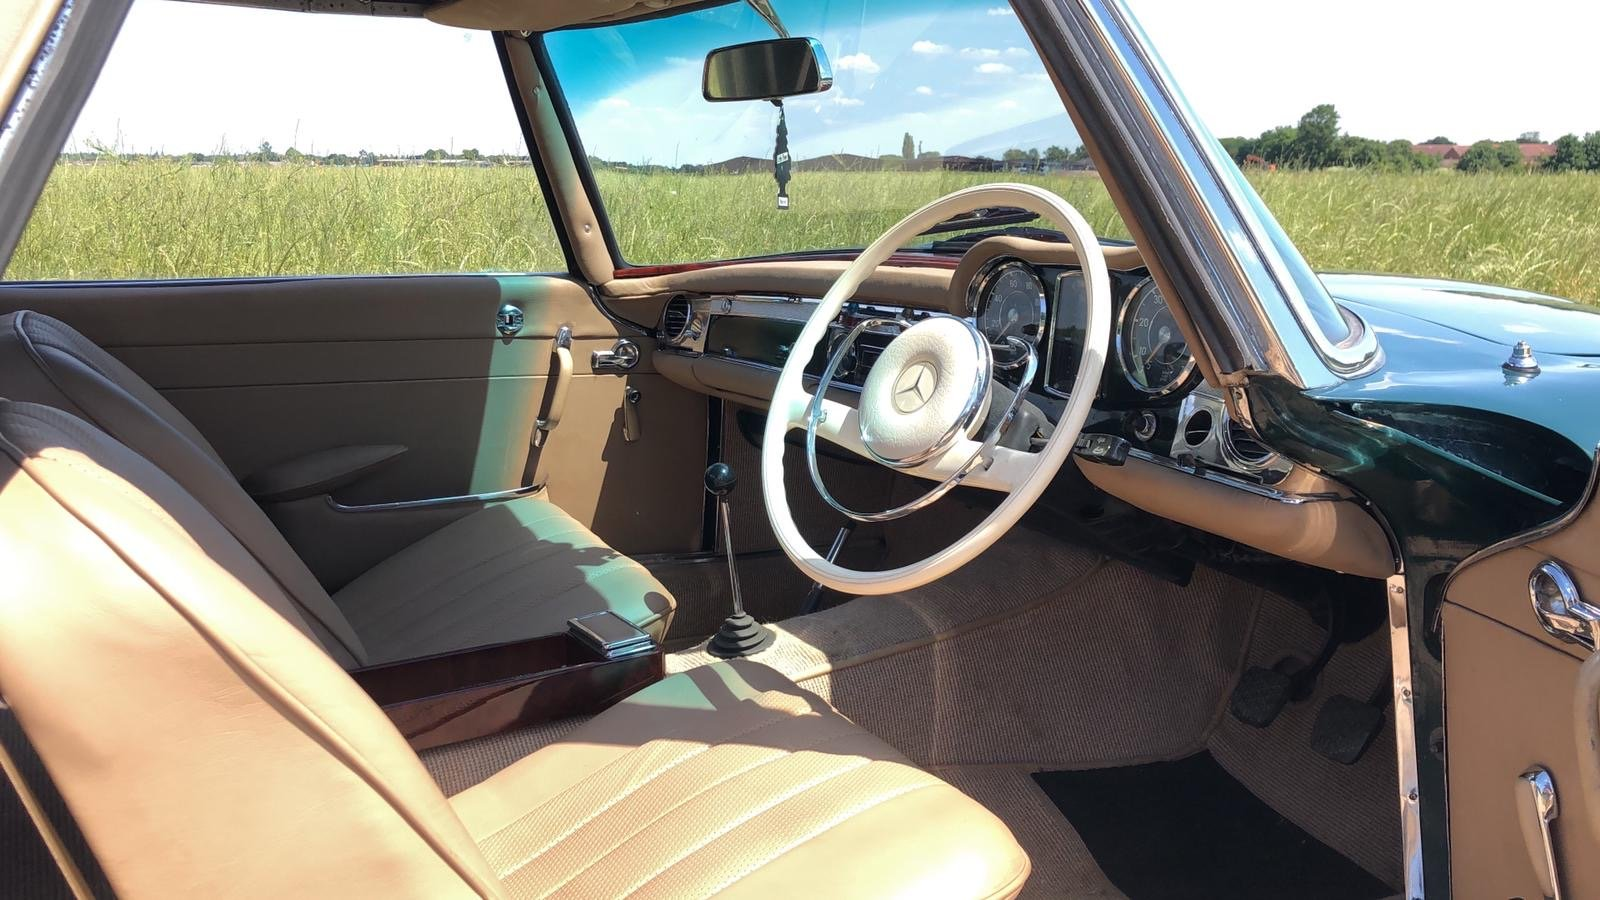 Mercedes-Benz 230 SL Pagoda Manual 1966 For Sale (picture 13 of 13)